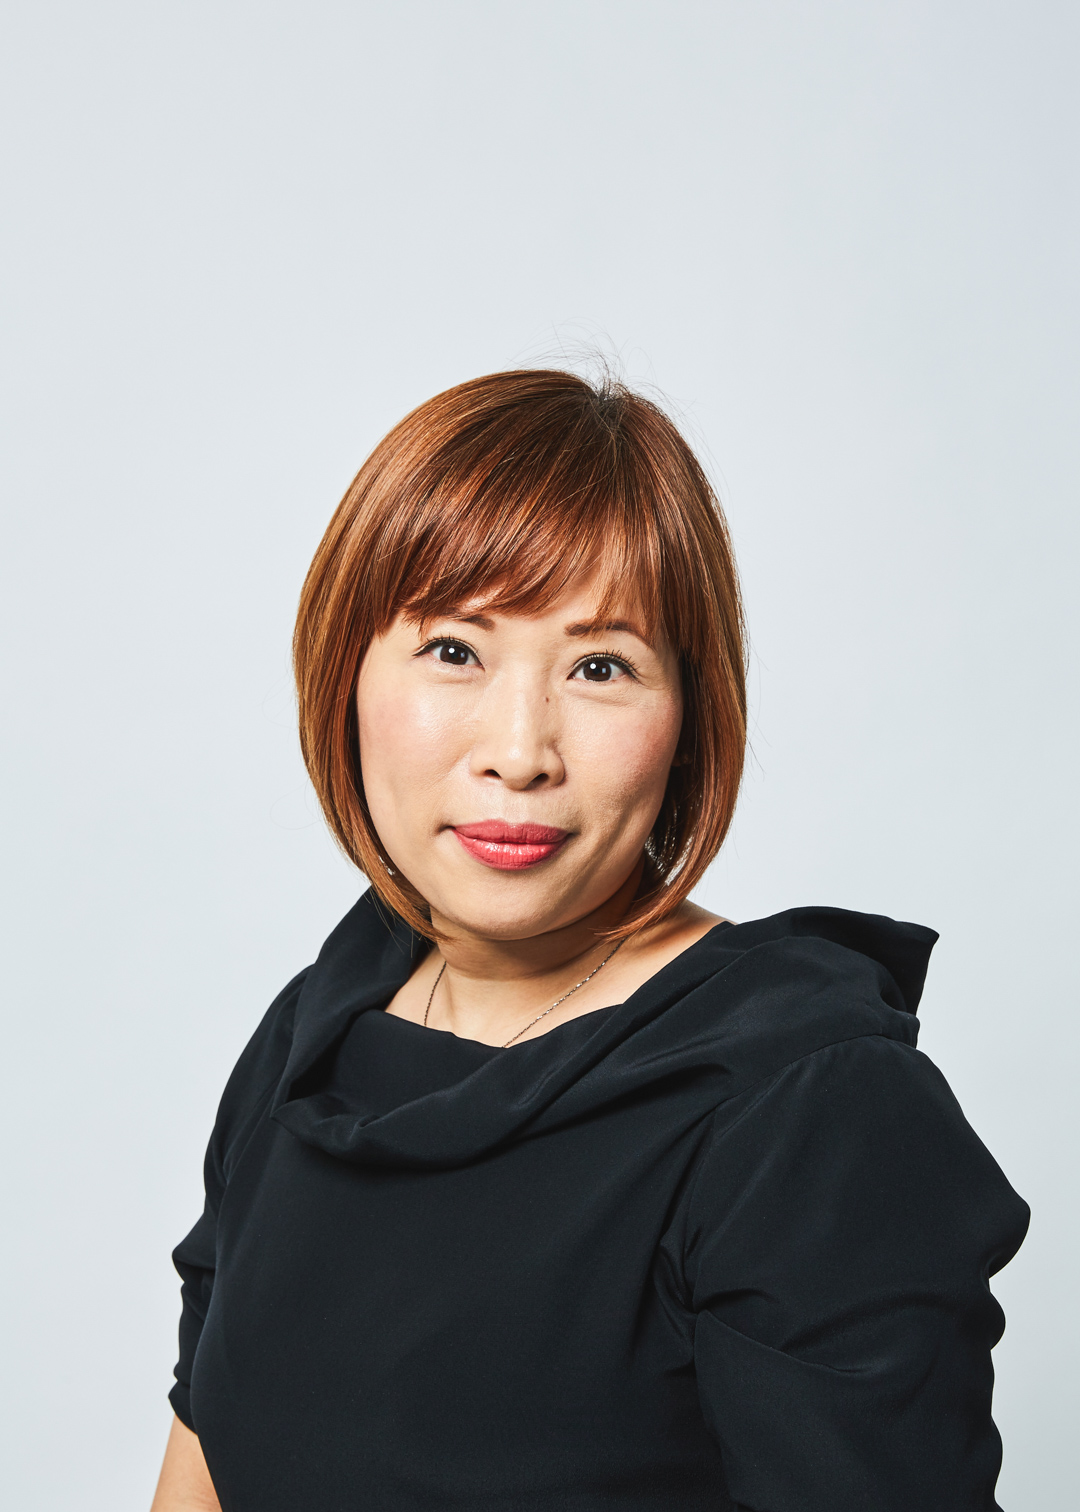 """JOO - With over 23 years of experience, Joo understands the art of gorgeous hair. She has a gift for assessing a person's facial features and personality to deliver the perfect shade and cut. She is also skilled at working with the nuances of Asian hair. Joo values the bond she has with her regulars, appreciating that their level of trust allows them to explore new ideas and techniques together. """"When a client shows happiness over the finished look, it reminds me that I have the best job in the world.""""Haircut - $115Blowdry - $95Single Process Color - $130Special Effects - $130Full Balayage - $240Partial Balayage - $200Full Foil - $255Partial Foil - $200Extensions by consultation"""